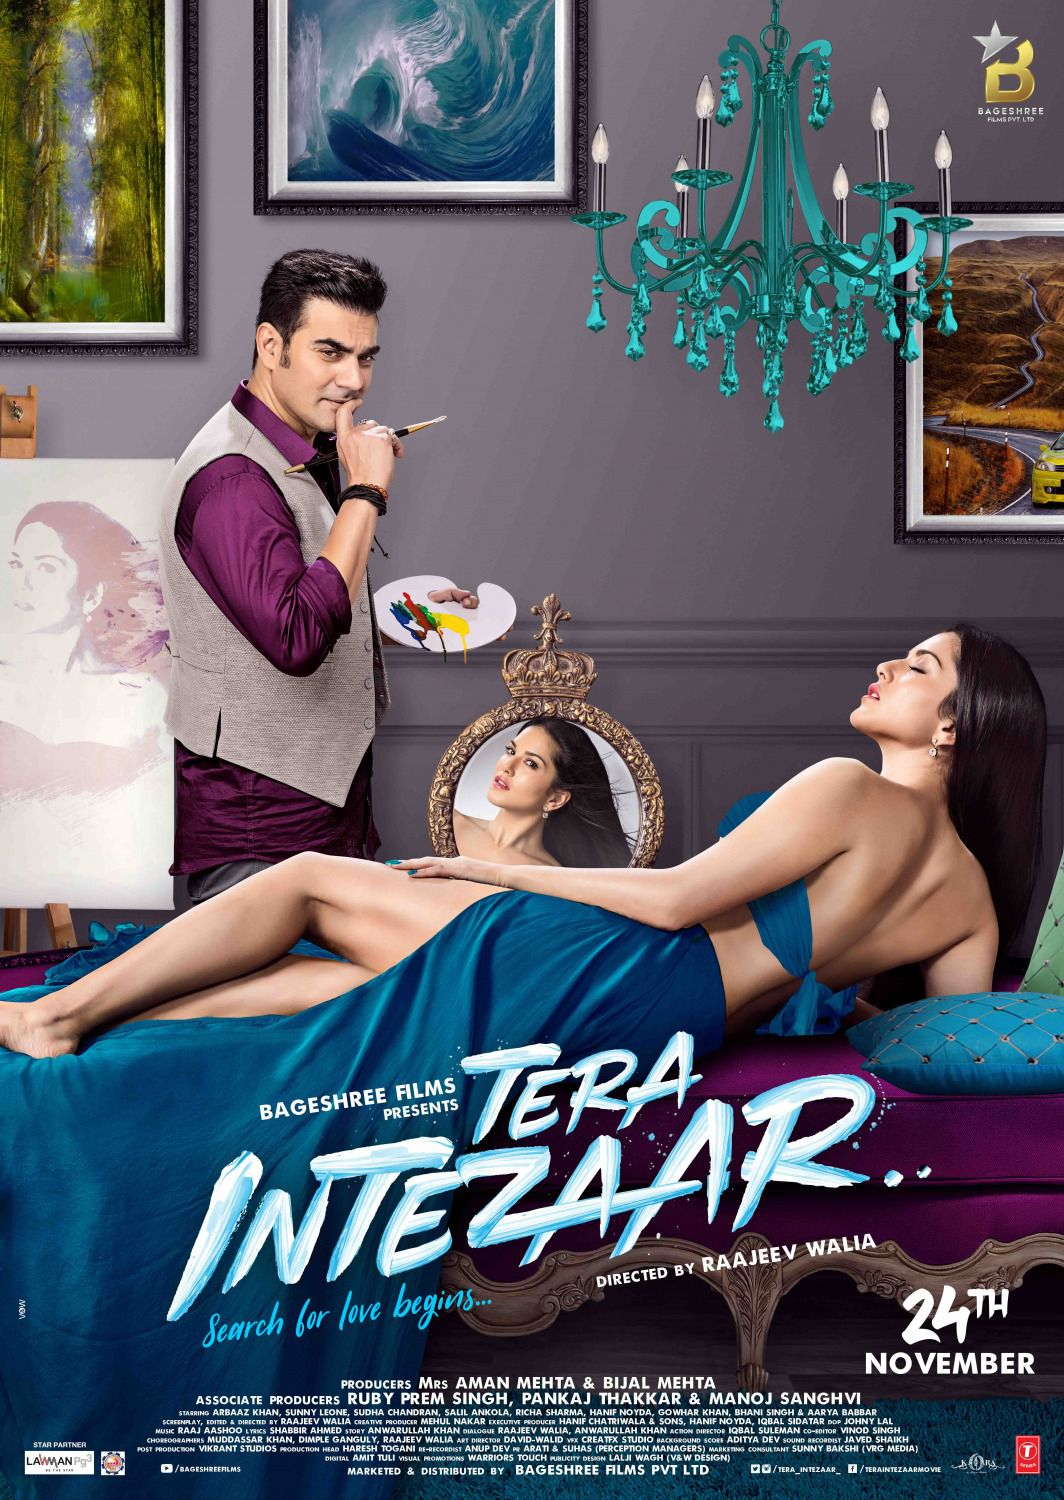 Tera Intezaar - Ti Aspetto - blue film poster art painter